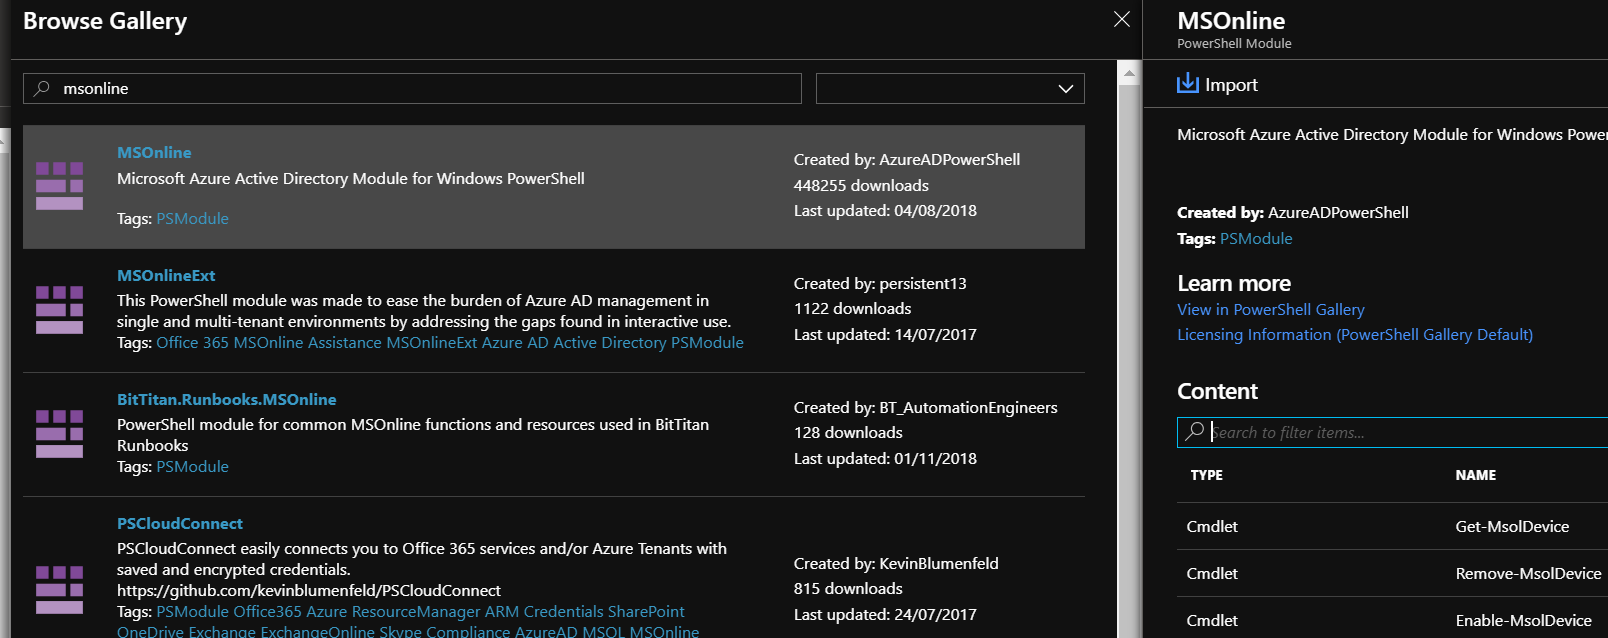 Azure automation credentials